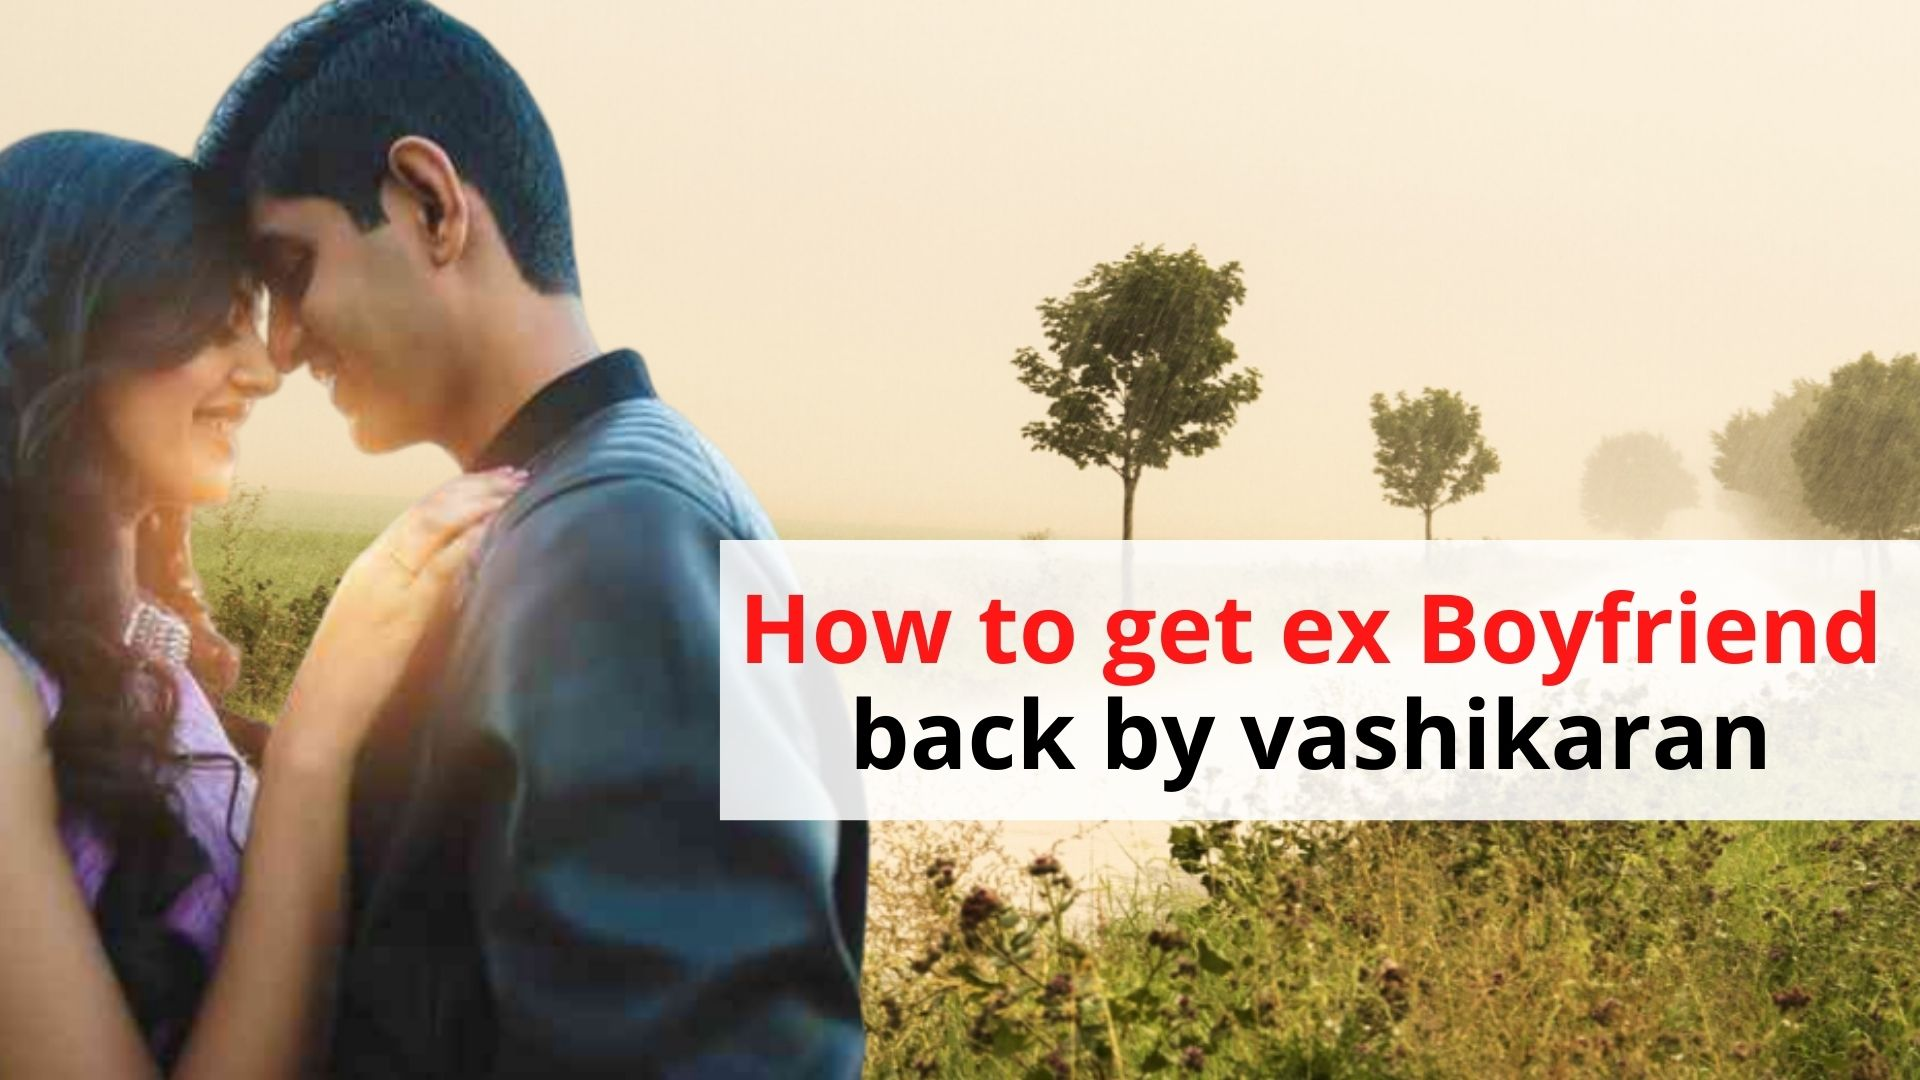 How to Get Ex-Boyfriend Back by Vashikaran